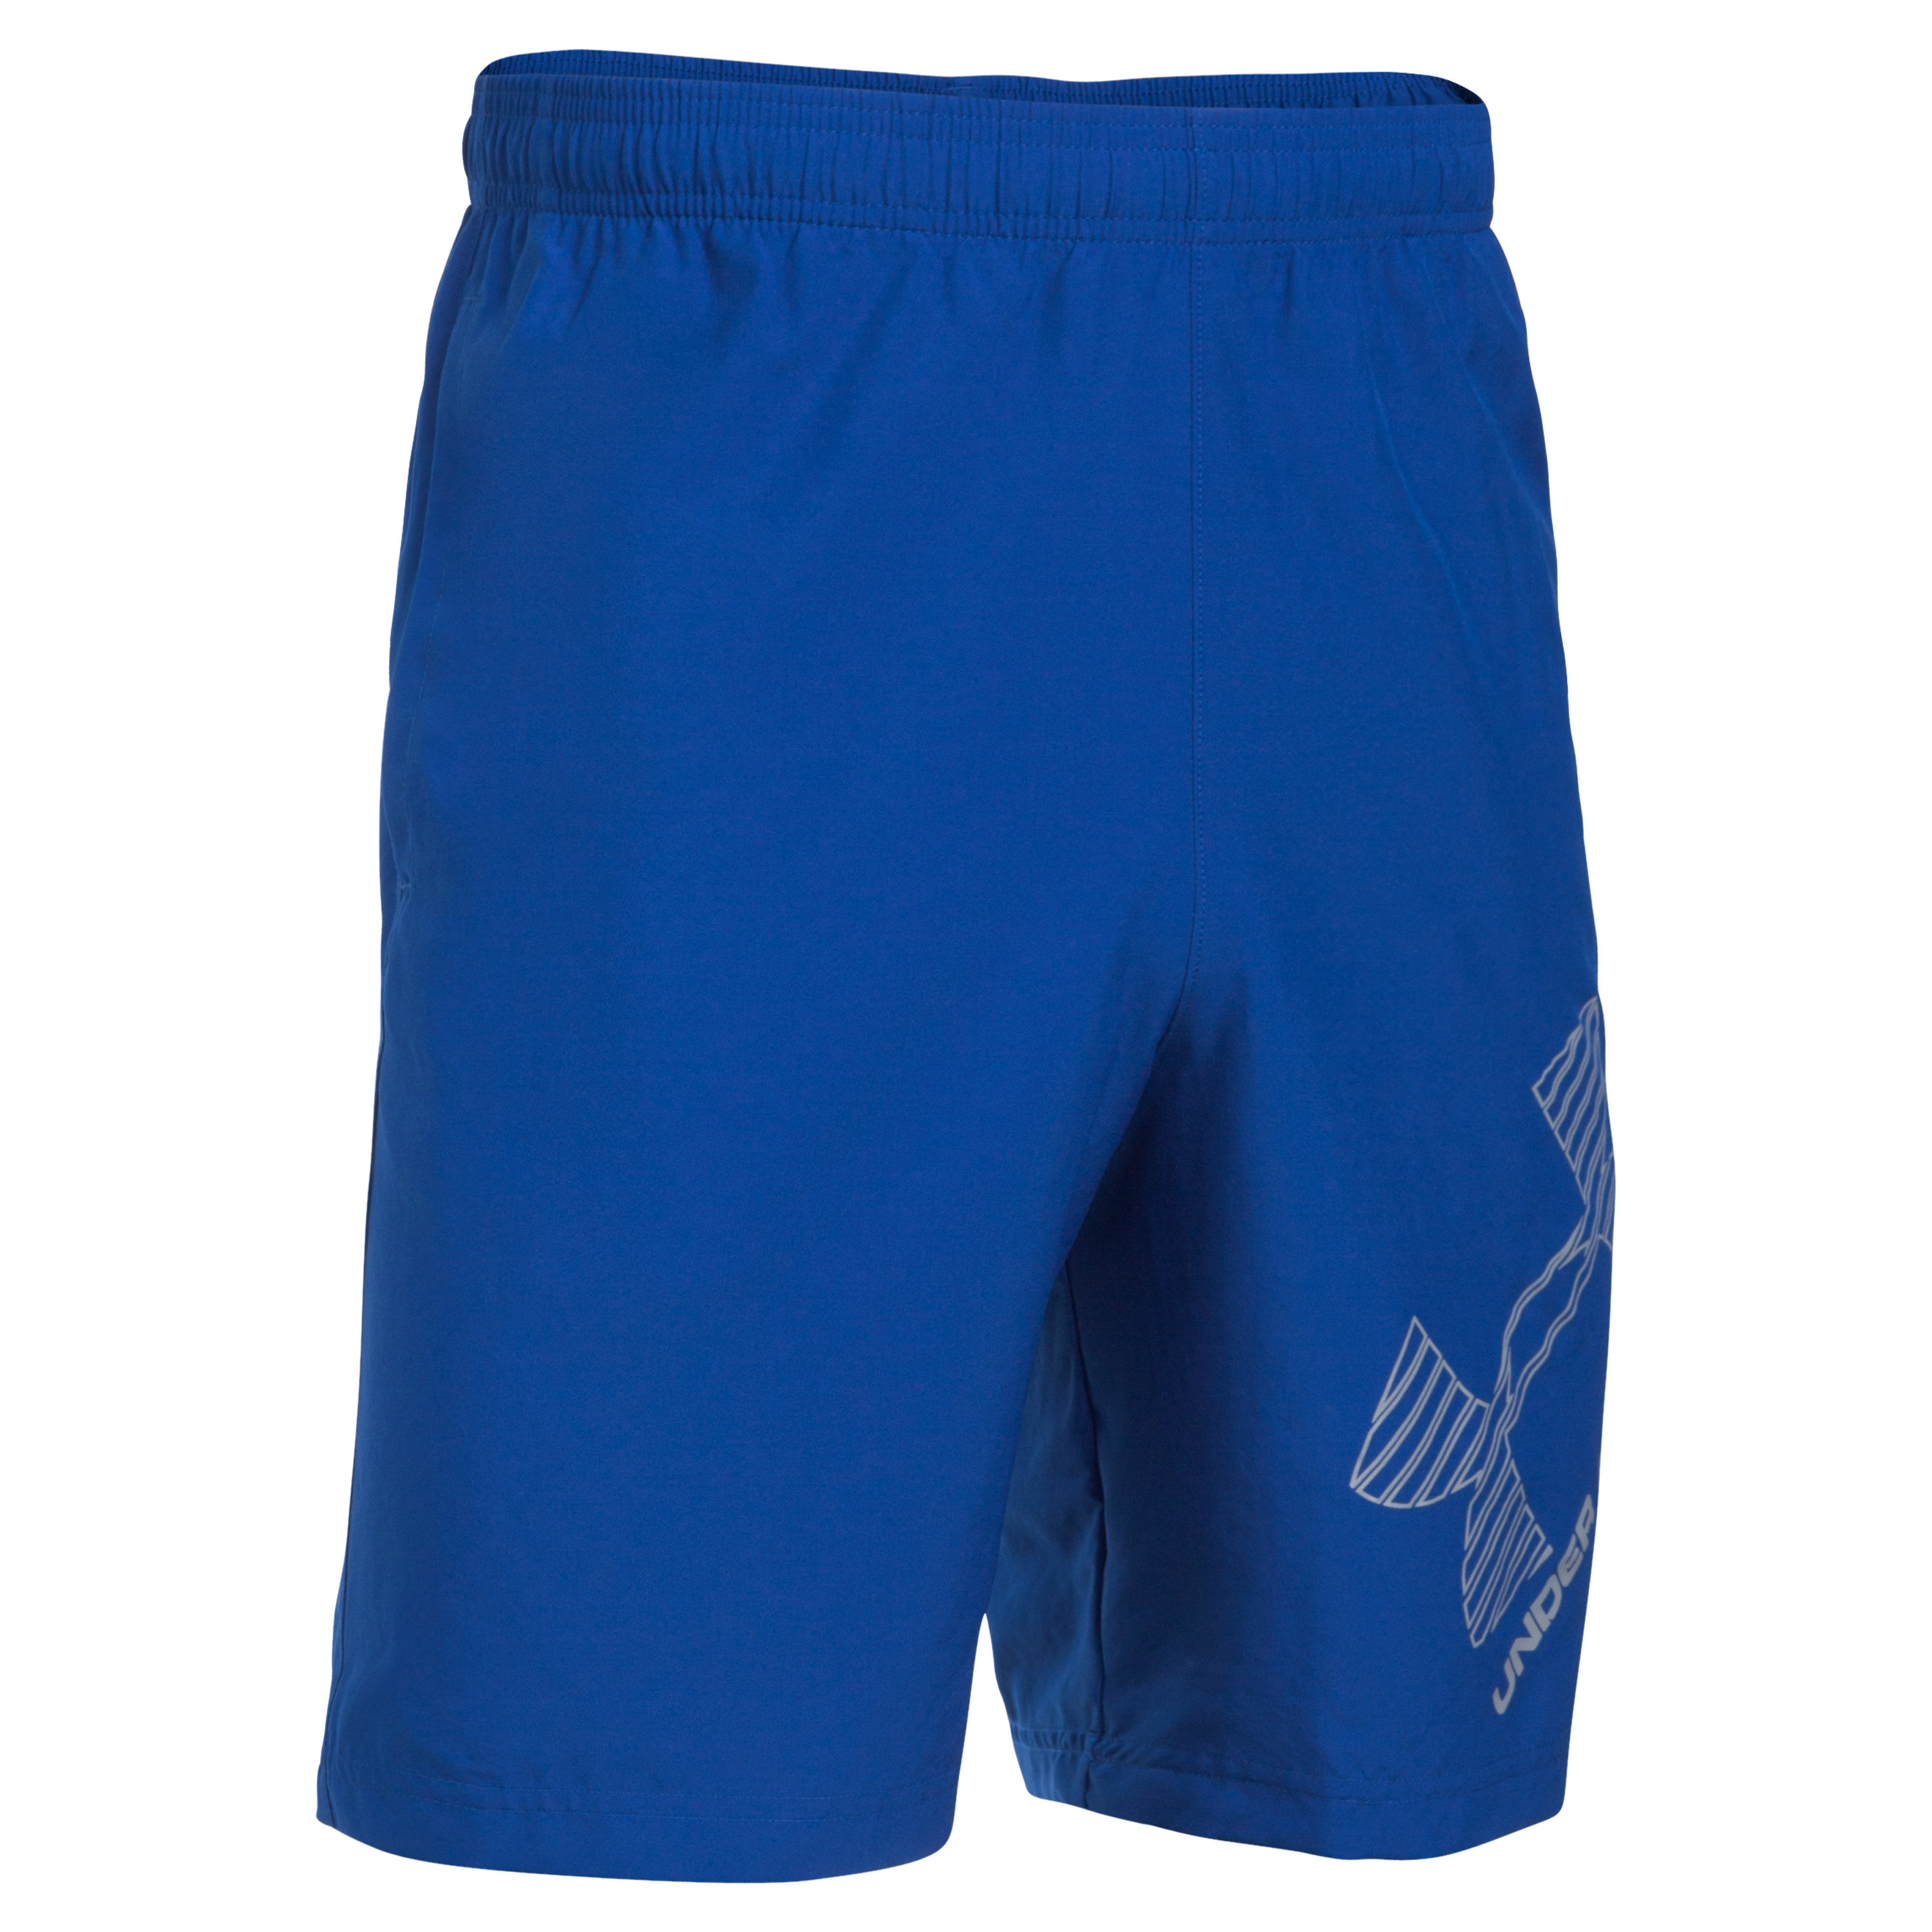 Under Armour Fitness Short Woven Graphic blau